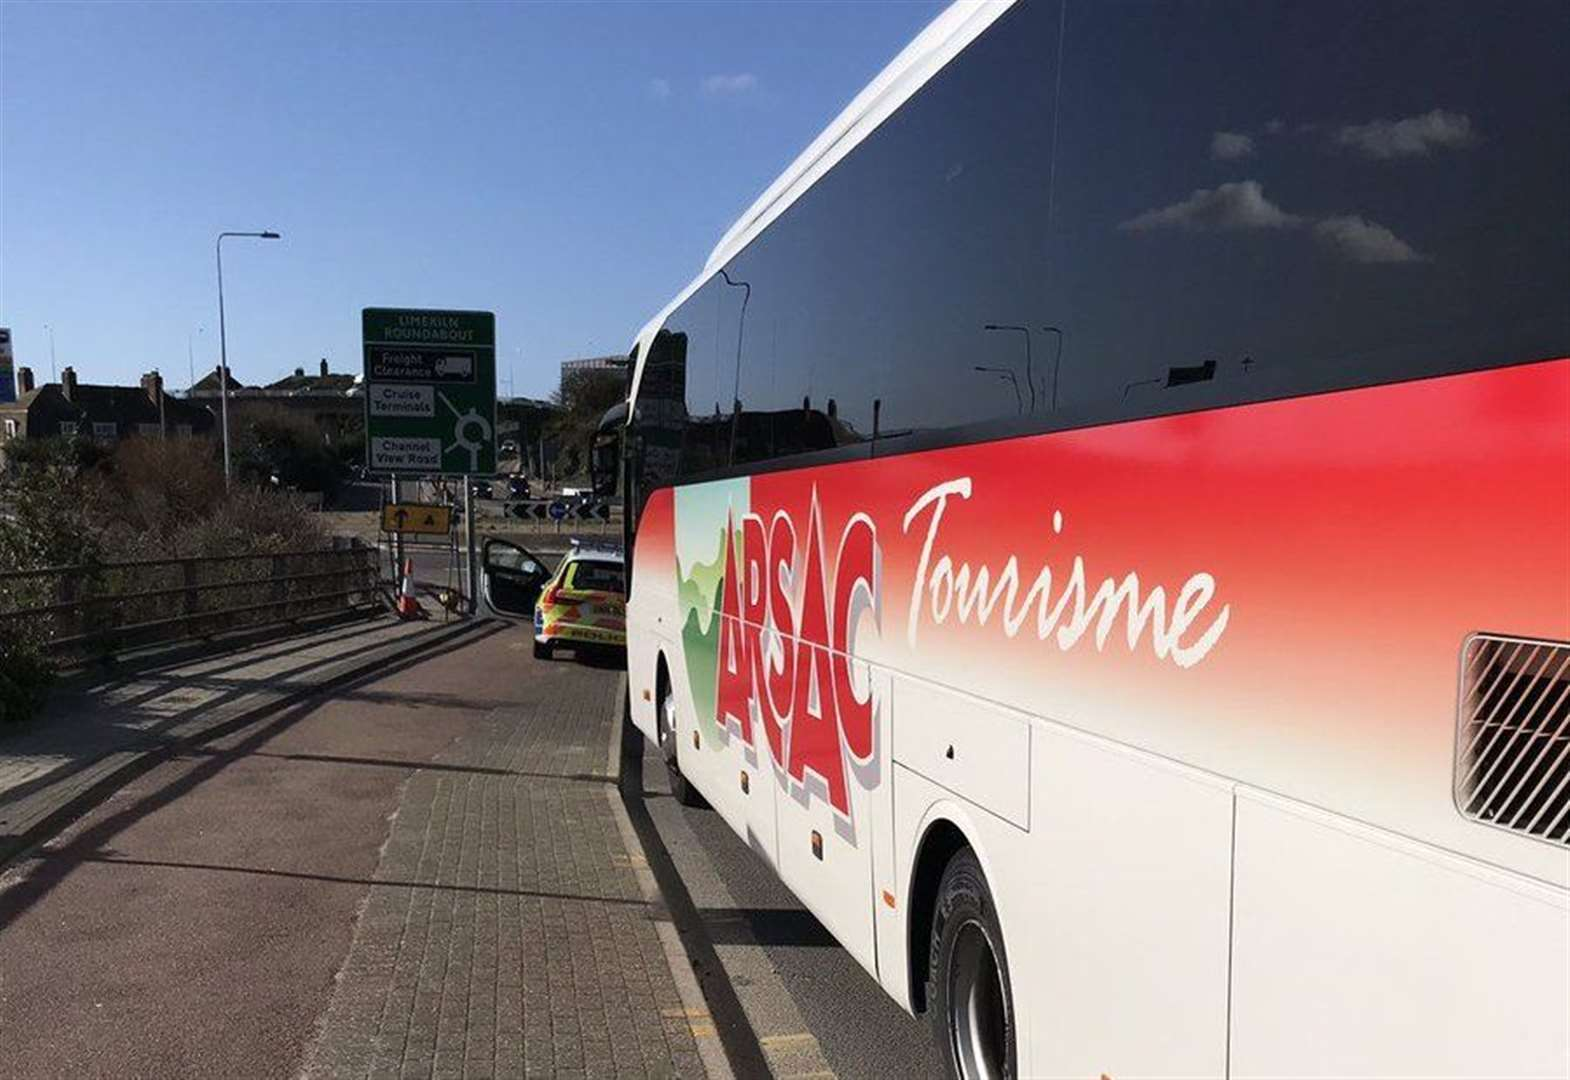 'Shocking' behaviour by coach driver